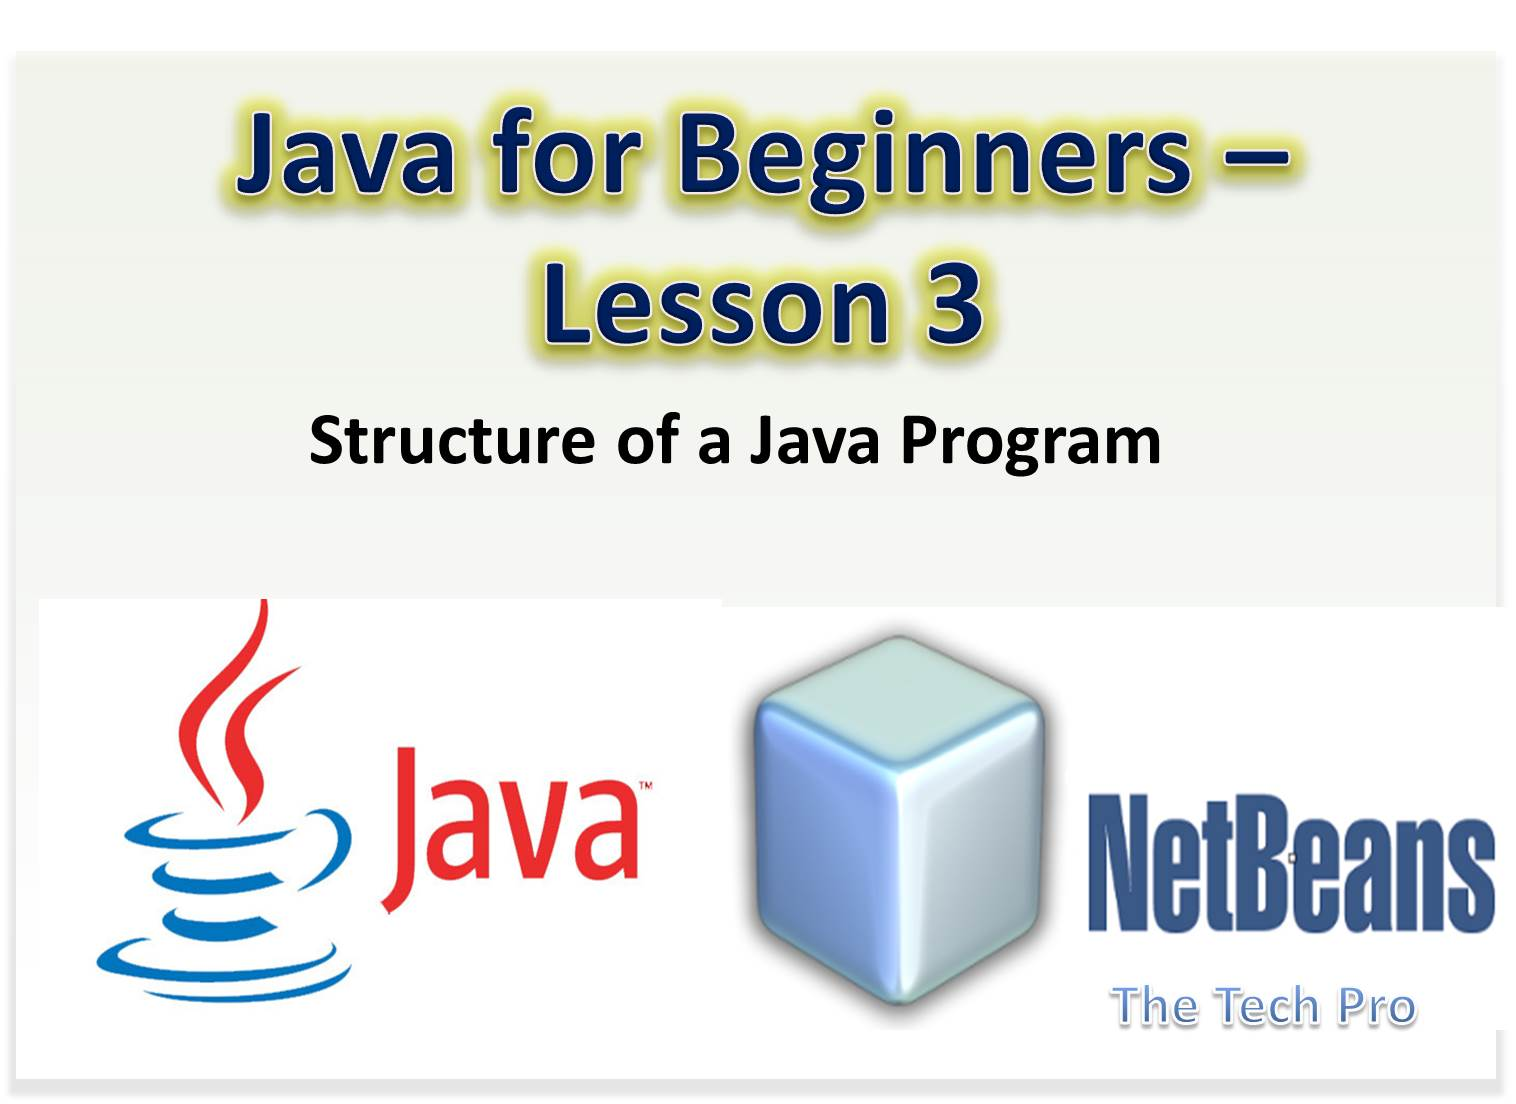 The tech pro kttpro java for beginners lesson 3 structure of java for beginners lesson 3 structure of a java program ccuart Image collections